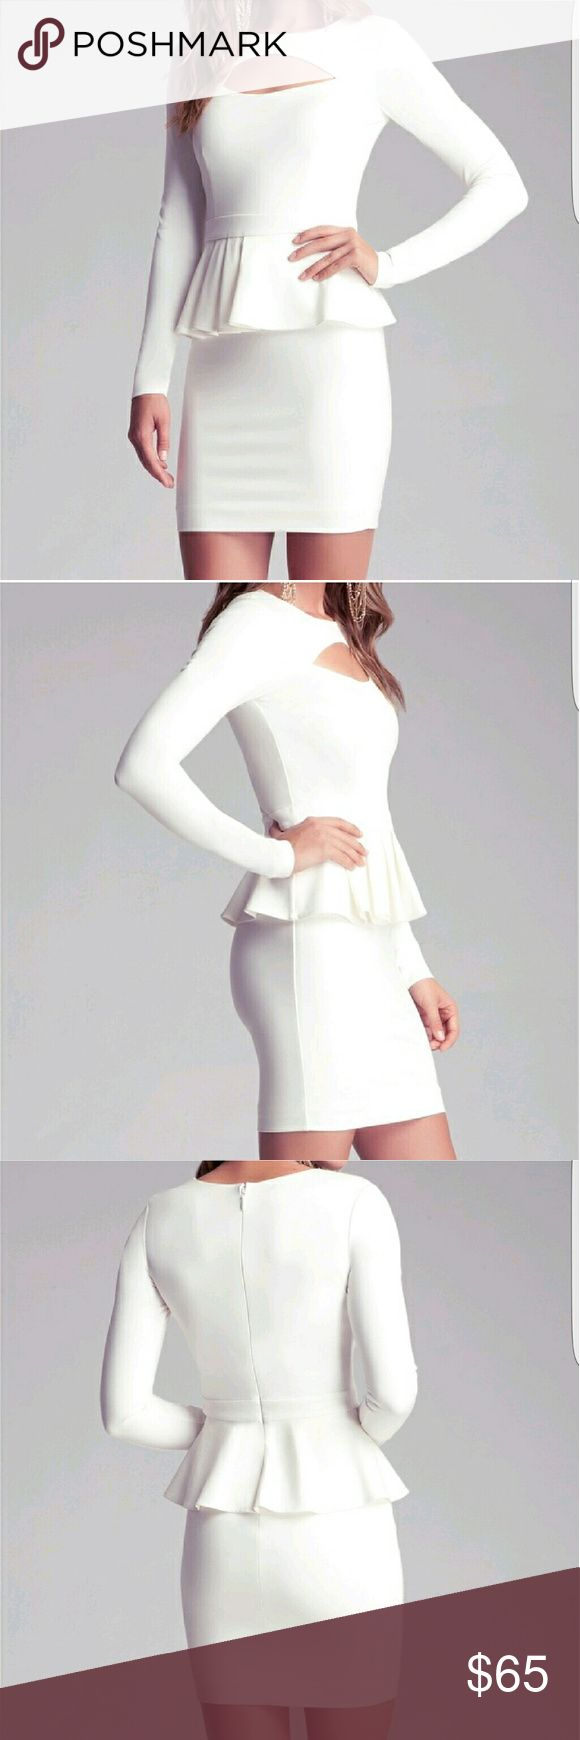 Bebe beautiful  white peplum dress size x-small Excellent condition bebe Dresses Mini